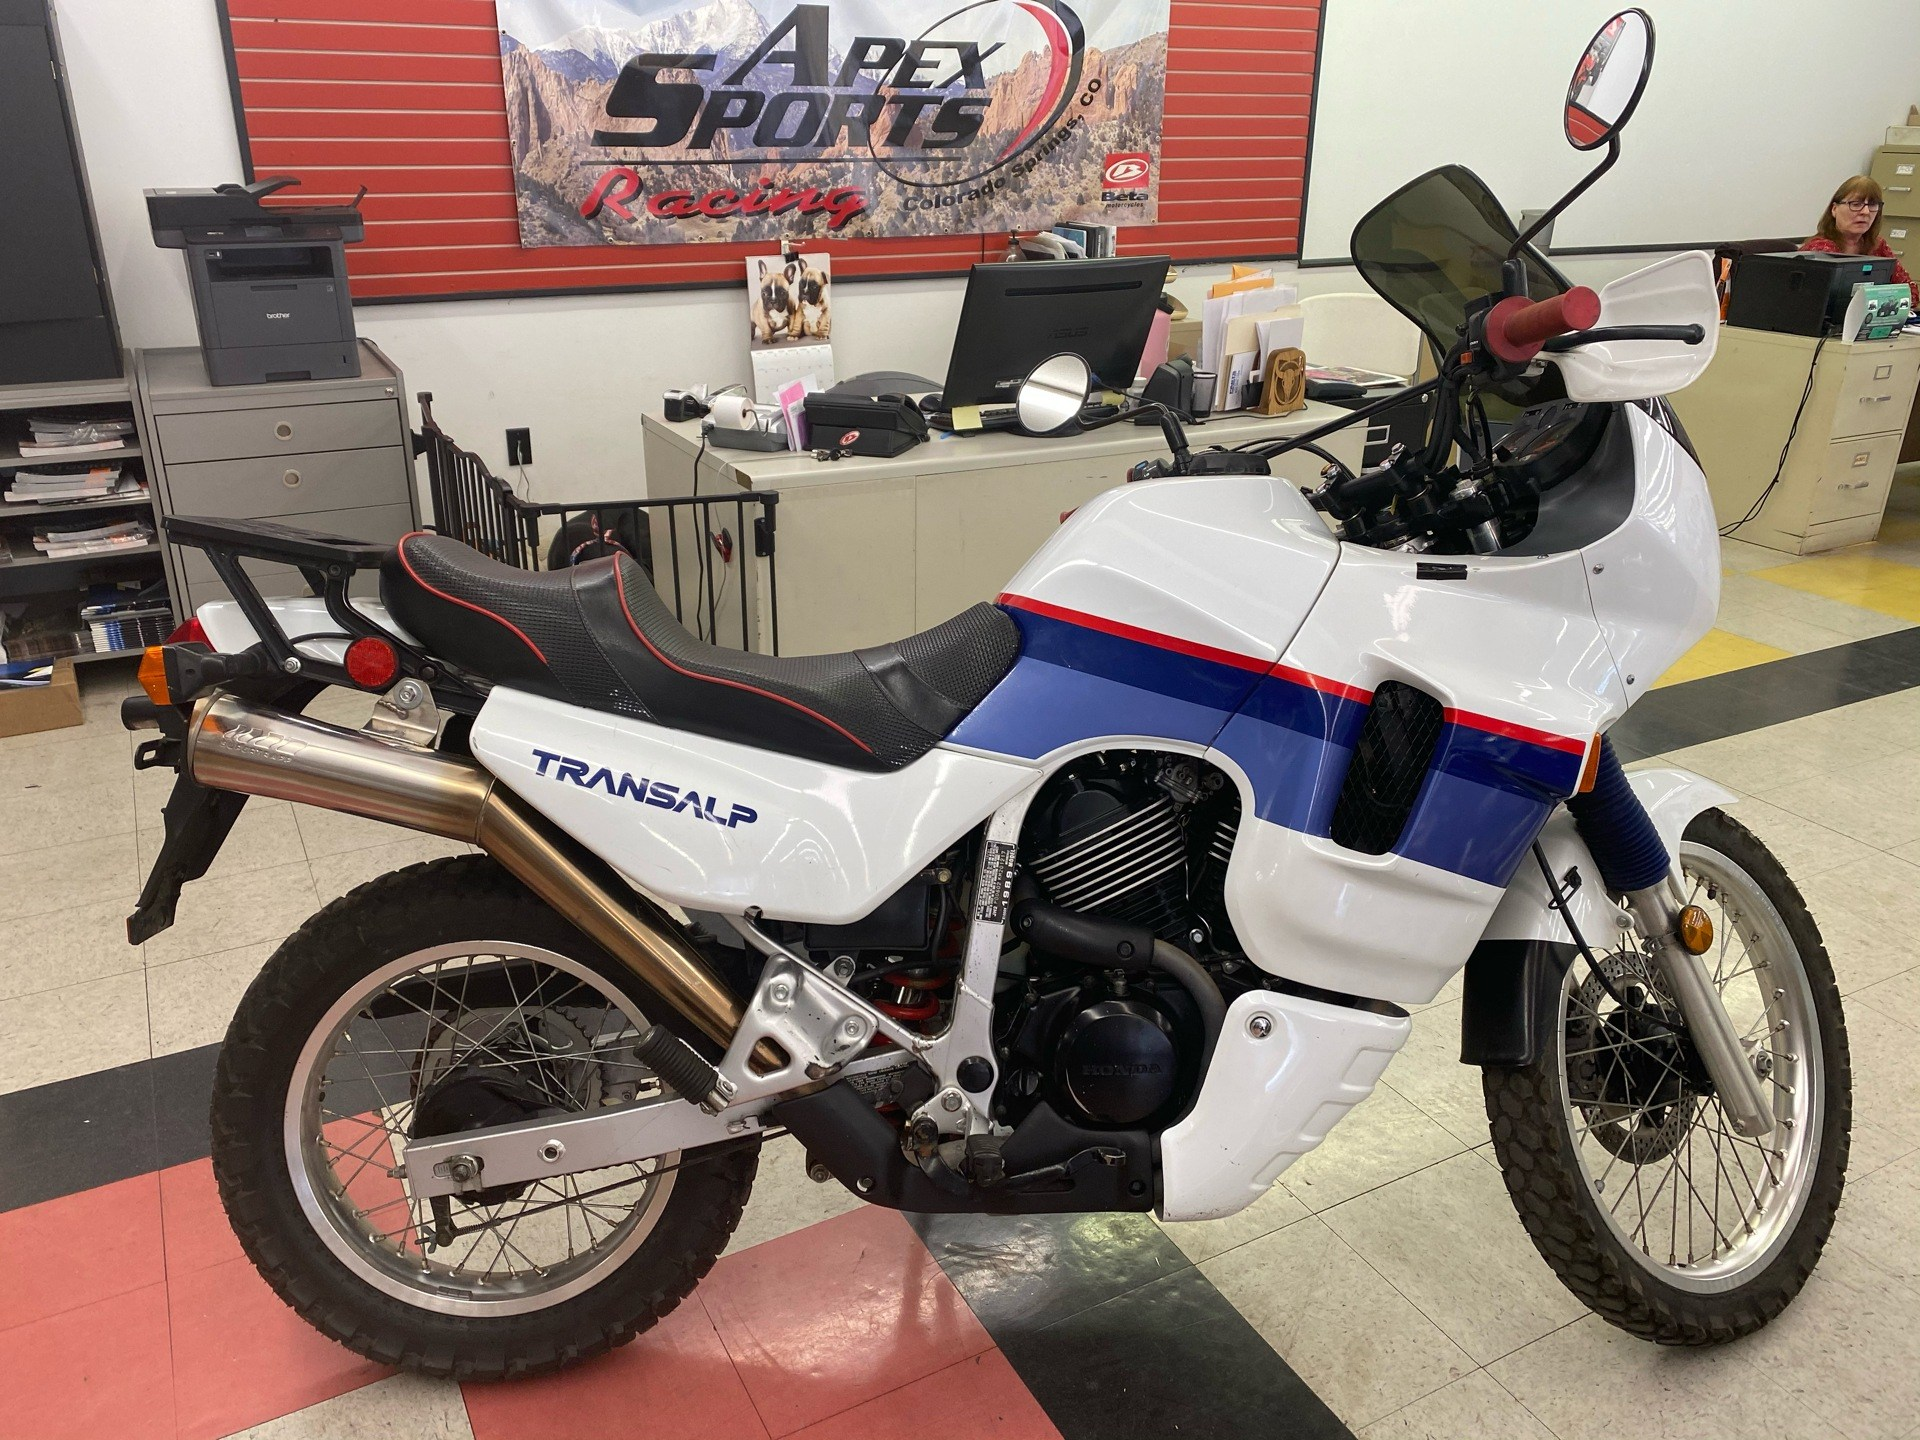 1989 Honda XL600 V TRANSALP in Colorado Springs, Colorado - Photo 5